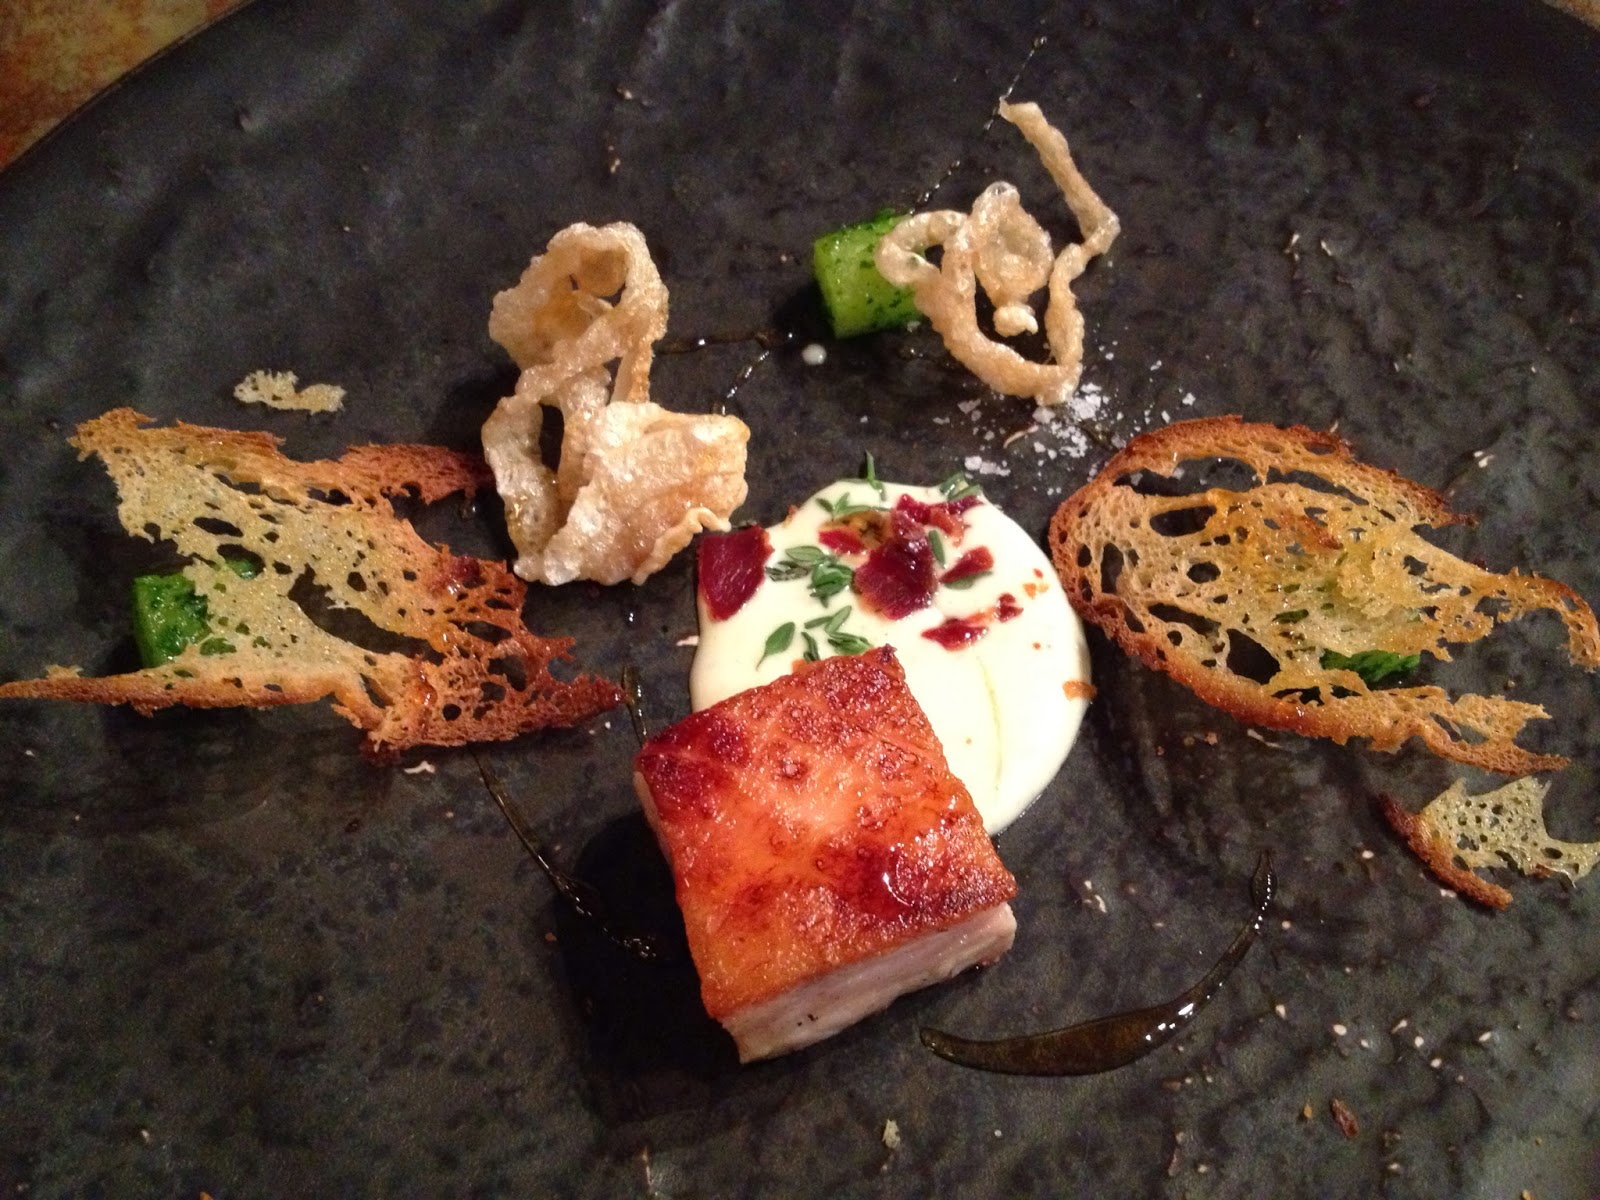 Cape Town - Pork belly